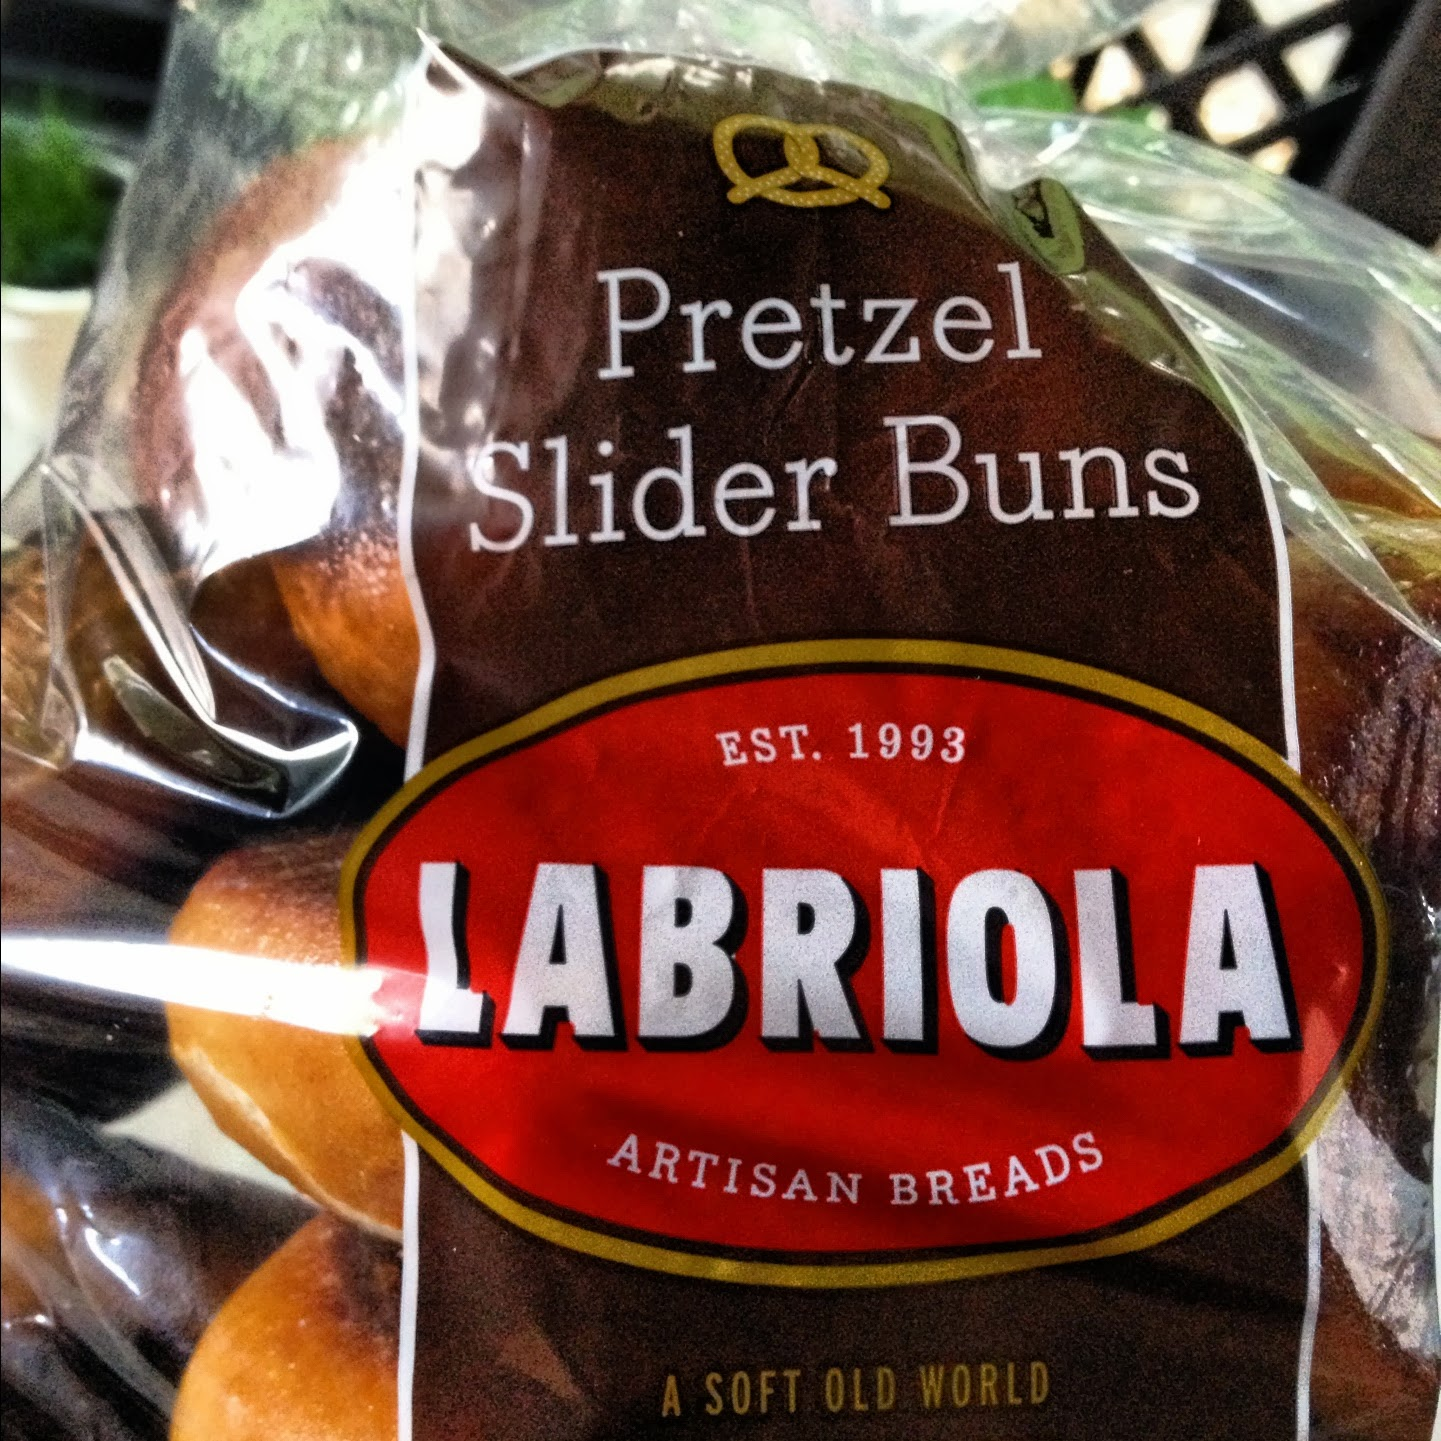 All I Can Think About For Some Reason Today Is Costco Labriola Pretzel Rolls And Miss Them Oh How You See Was At A Week Or